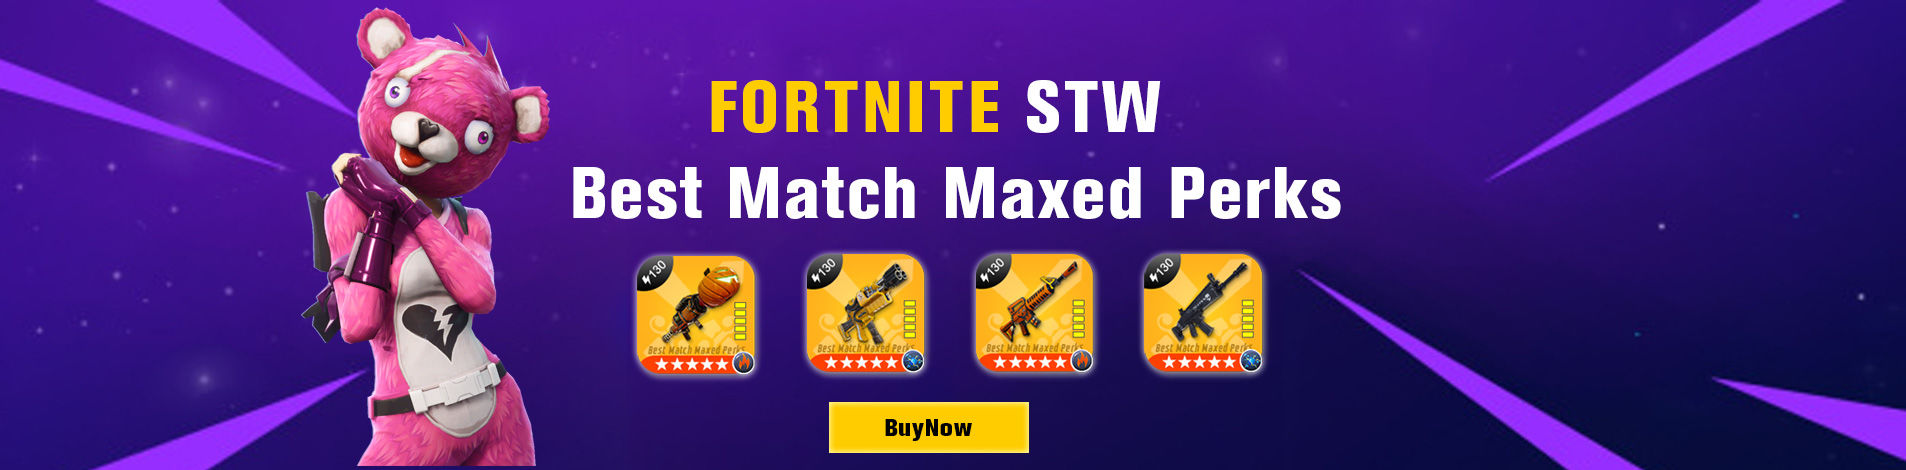 FORTNITE STW